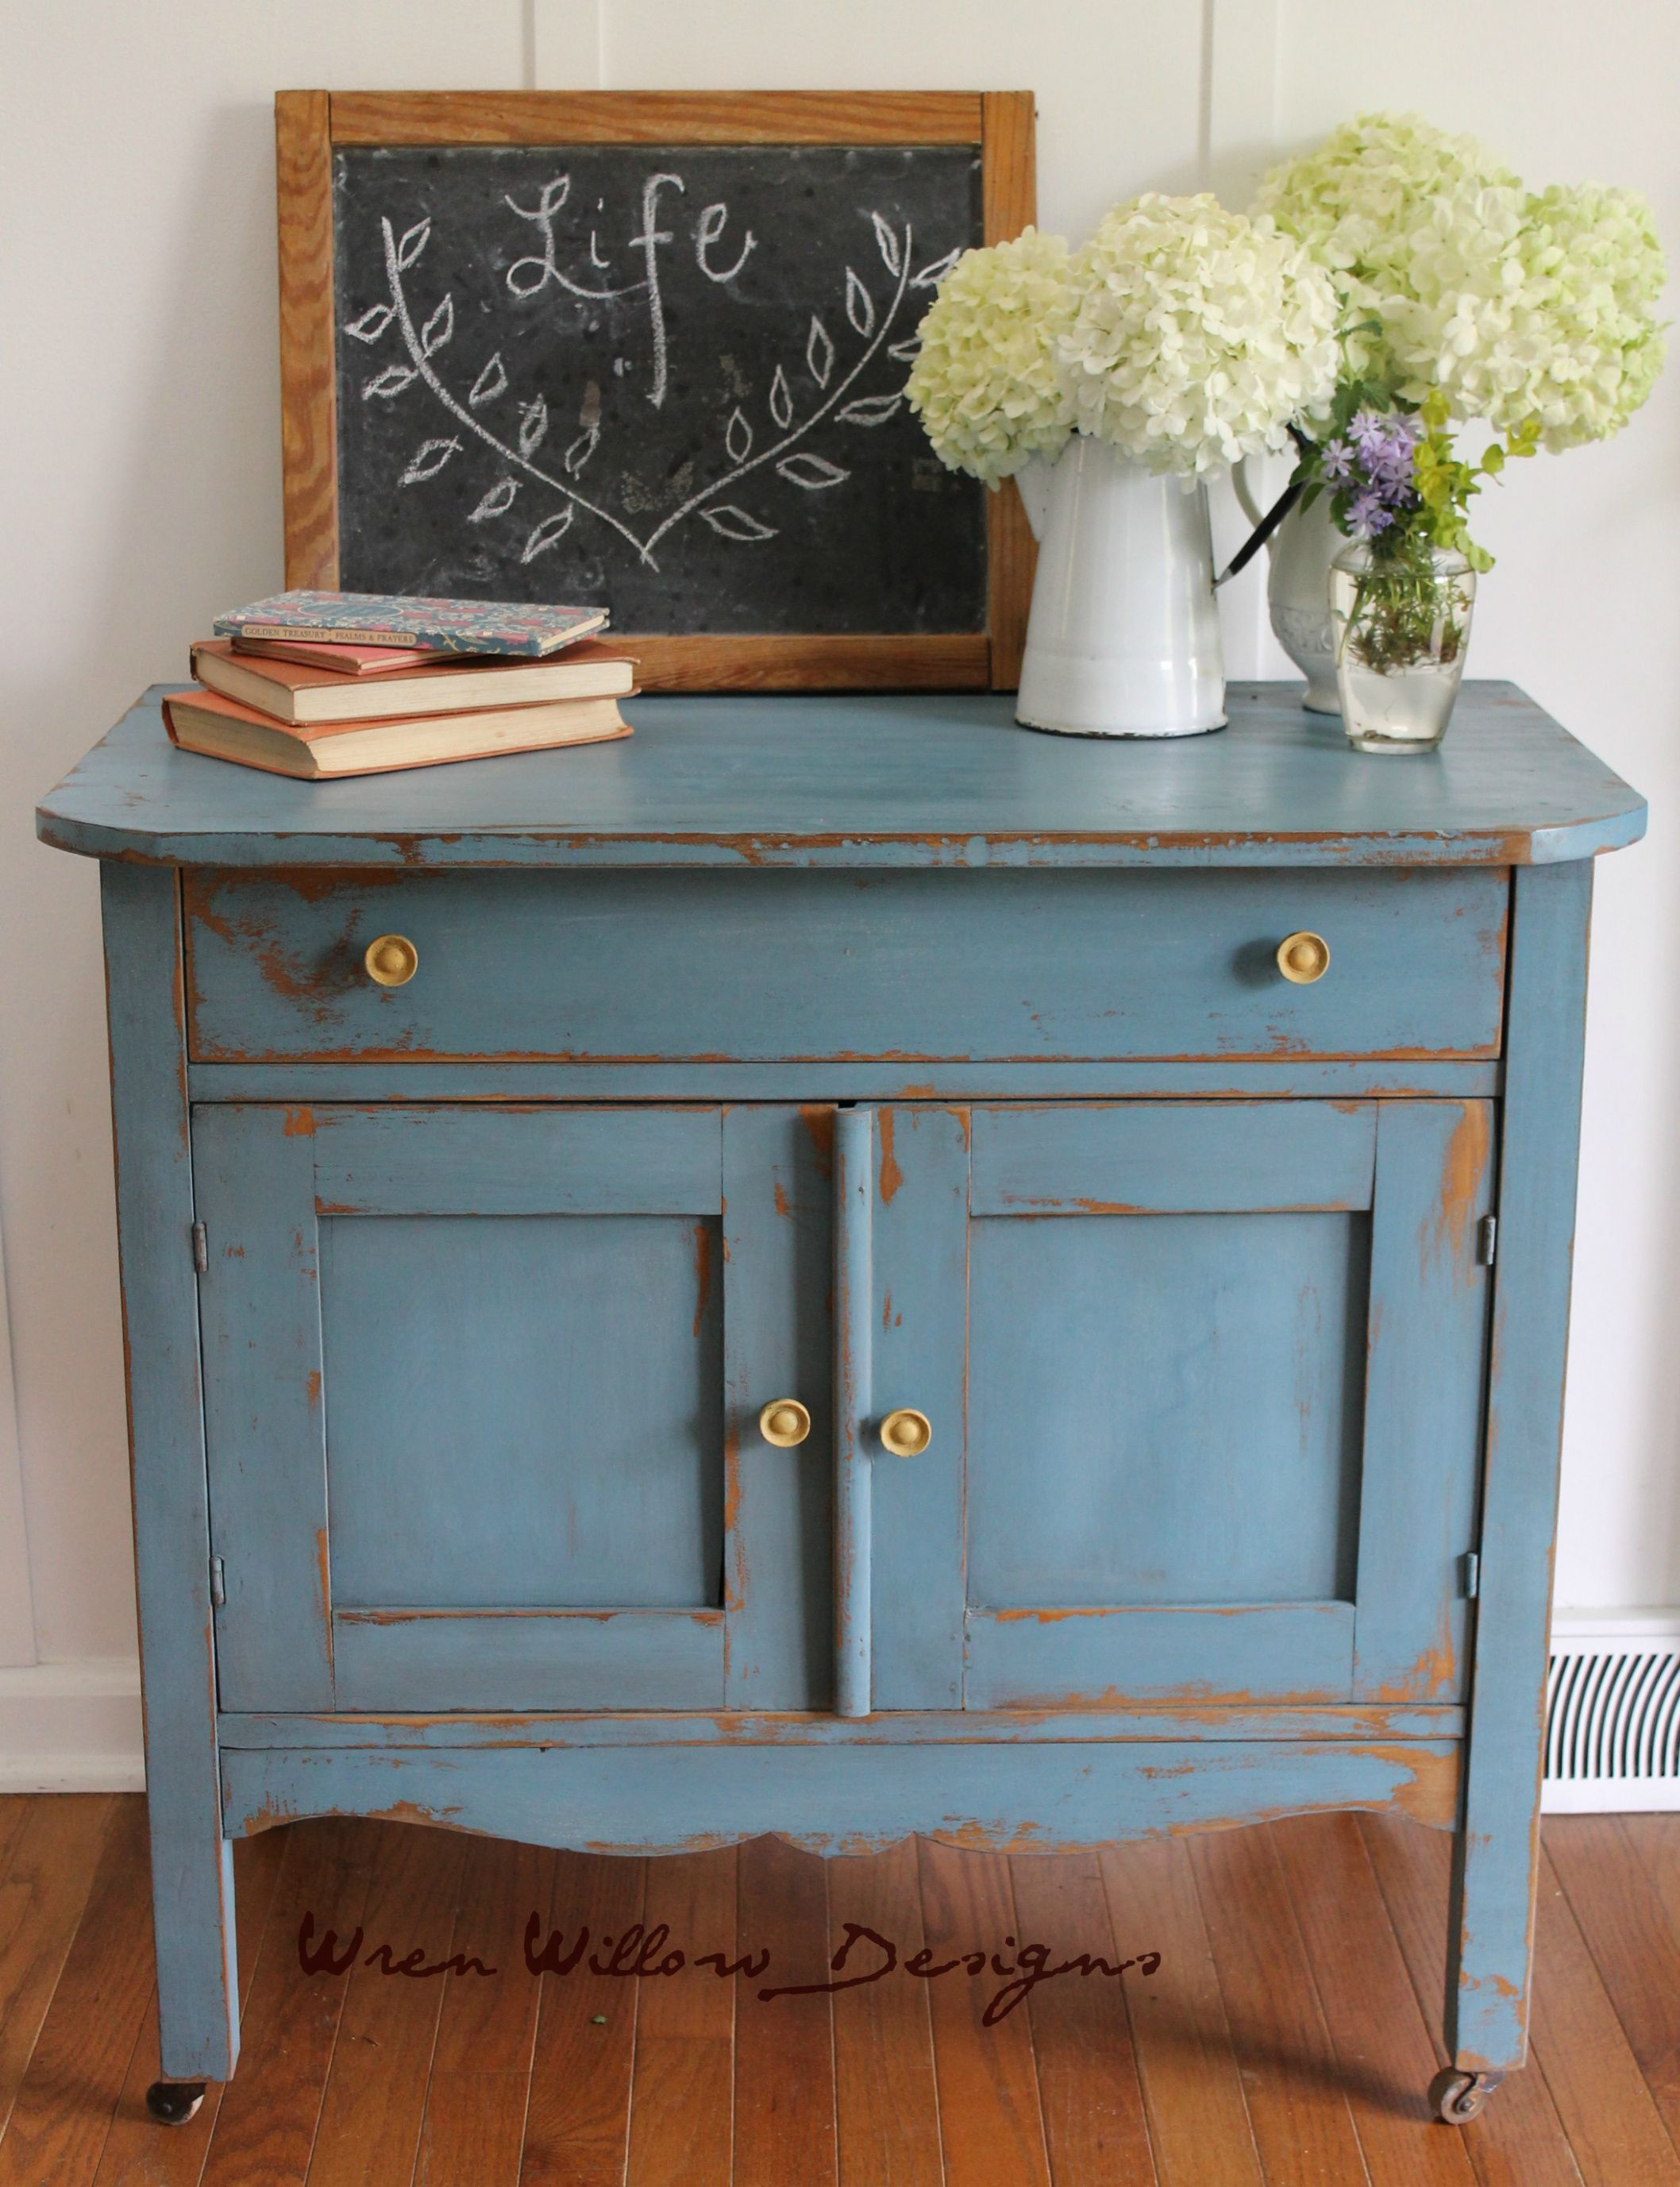 Acrylic Paint For Furniture Best Way To Paint Wood Furniture